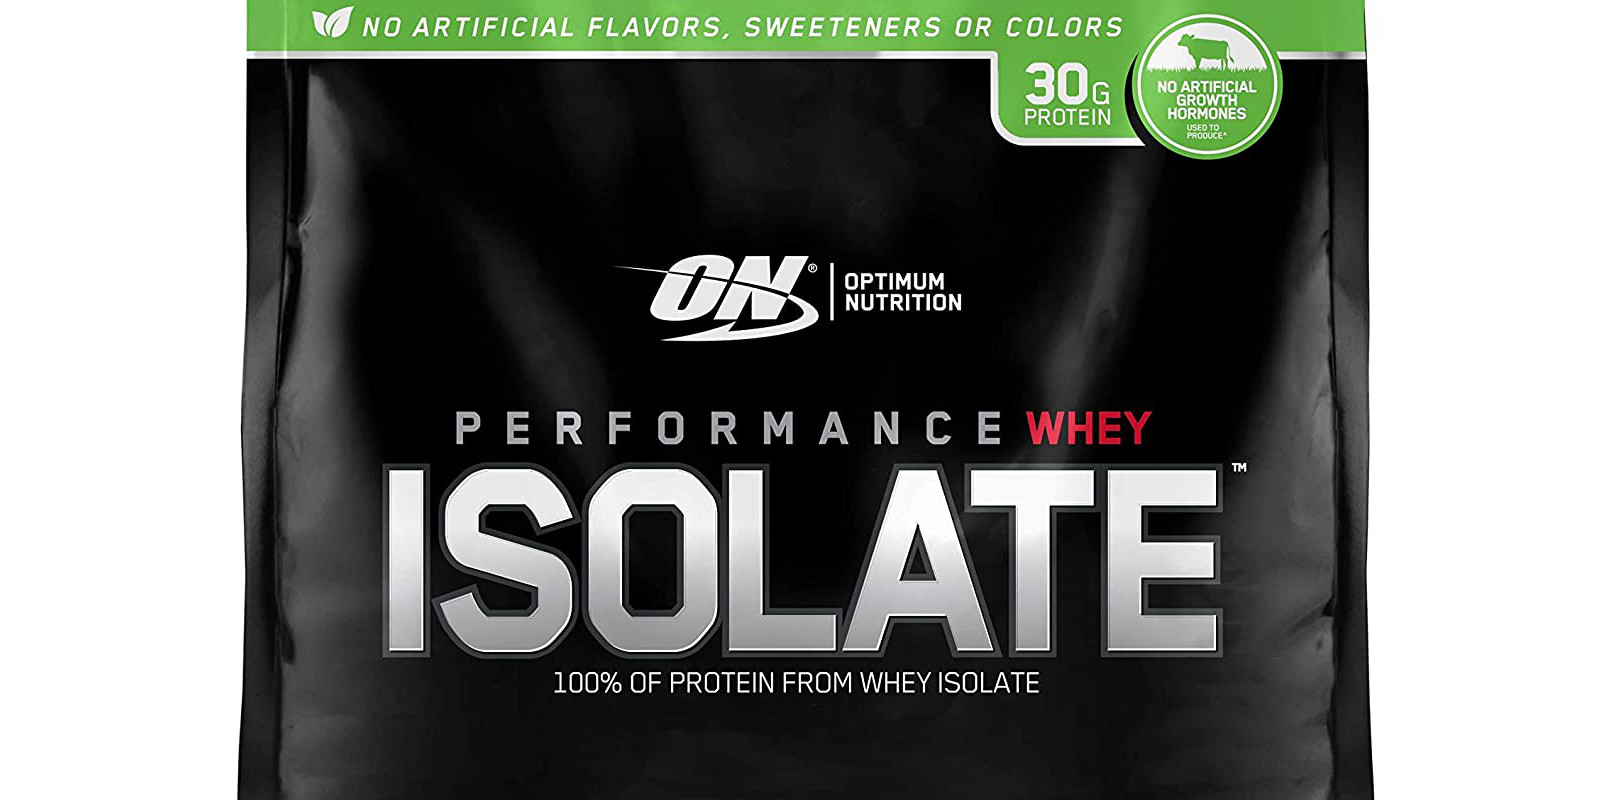 Score 3 35 Lbs Of Optimum Nutrition Whey Isolate Protein For 25 Reg 38 9to5toys